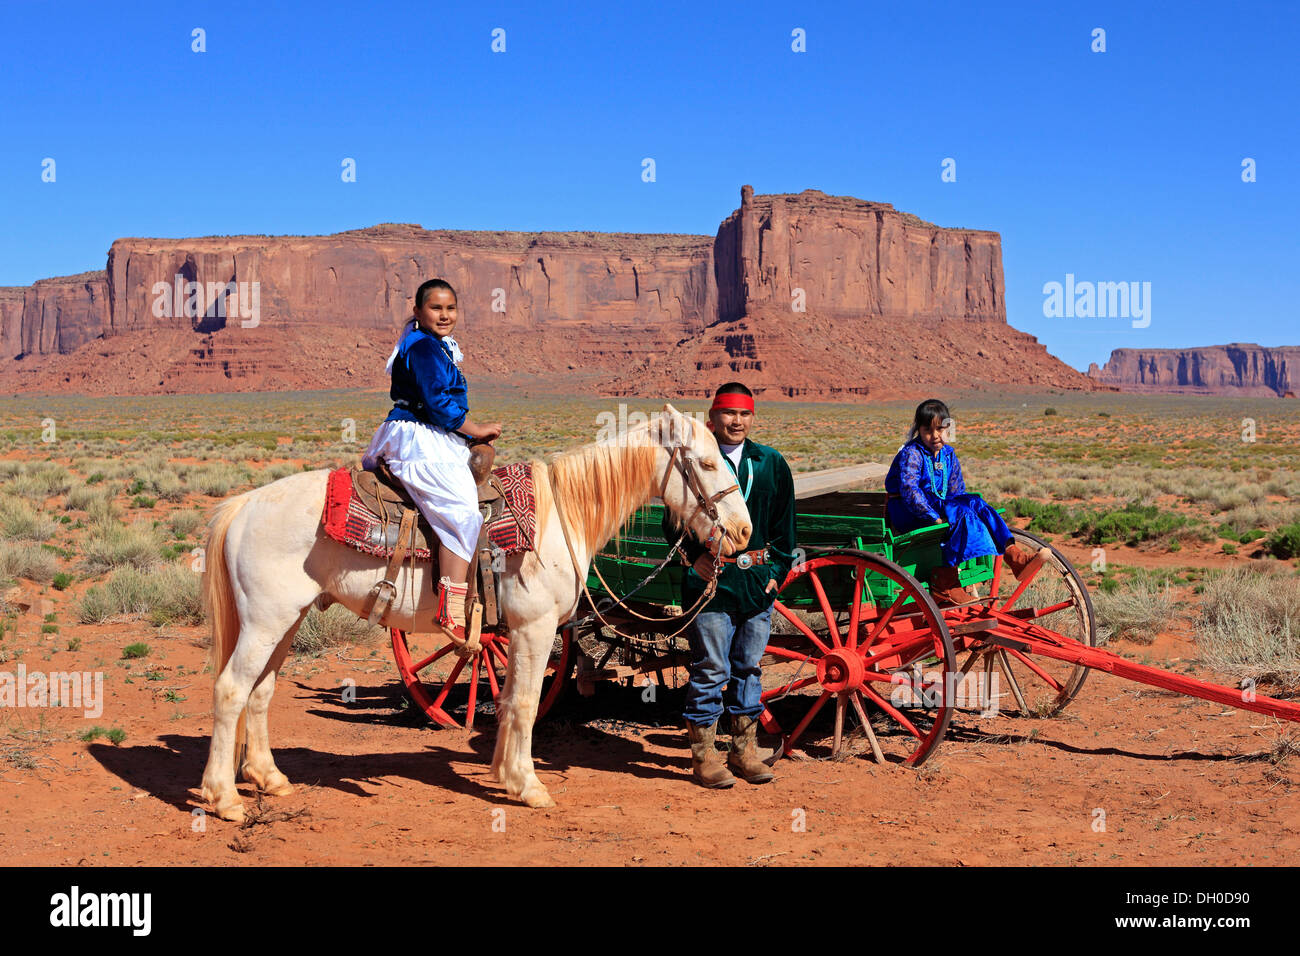 Navajo Indian family with a horse and carriage, Monument Valley, Utah, United States - Stock Image